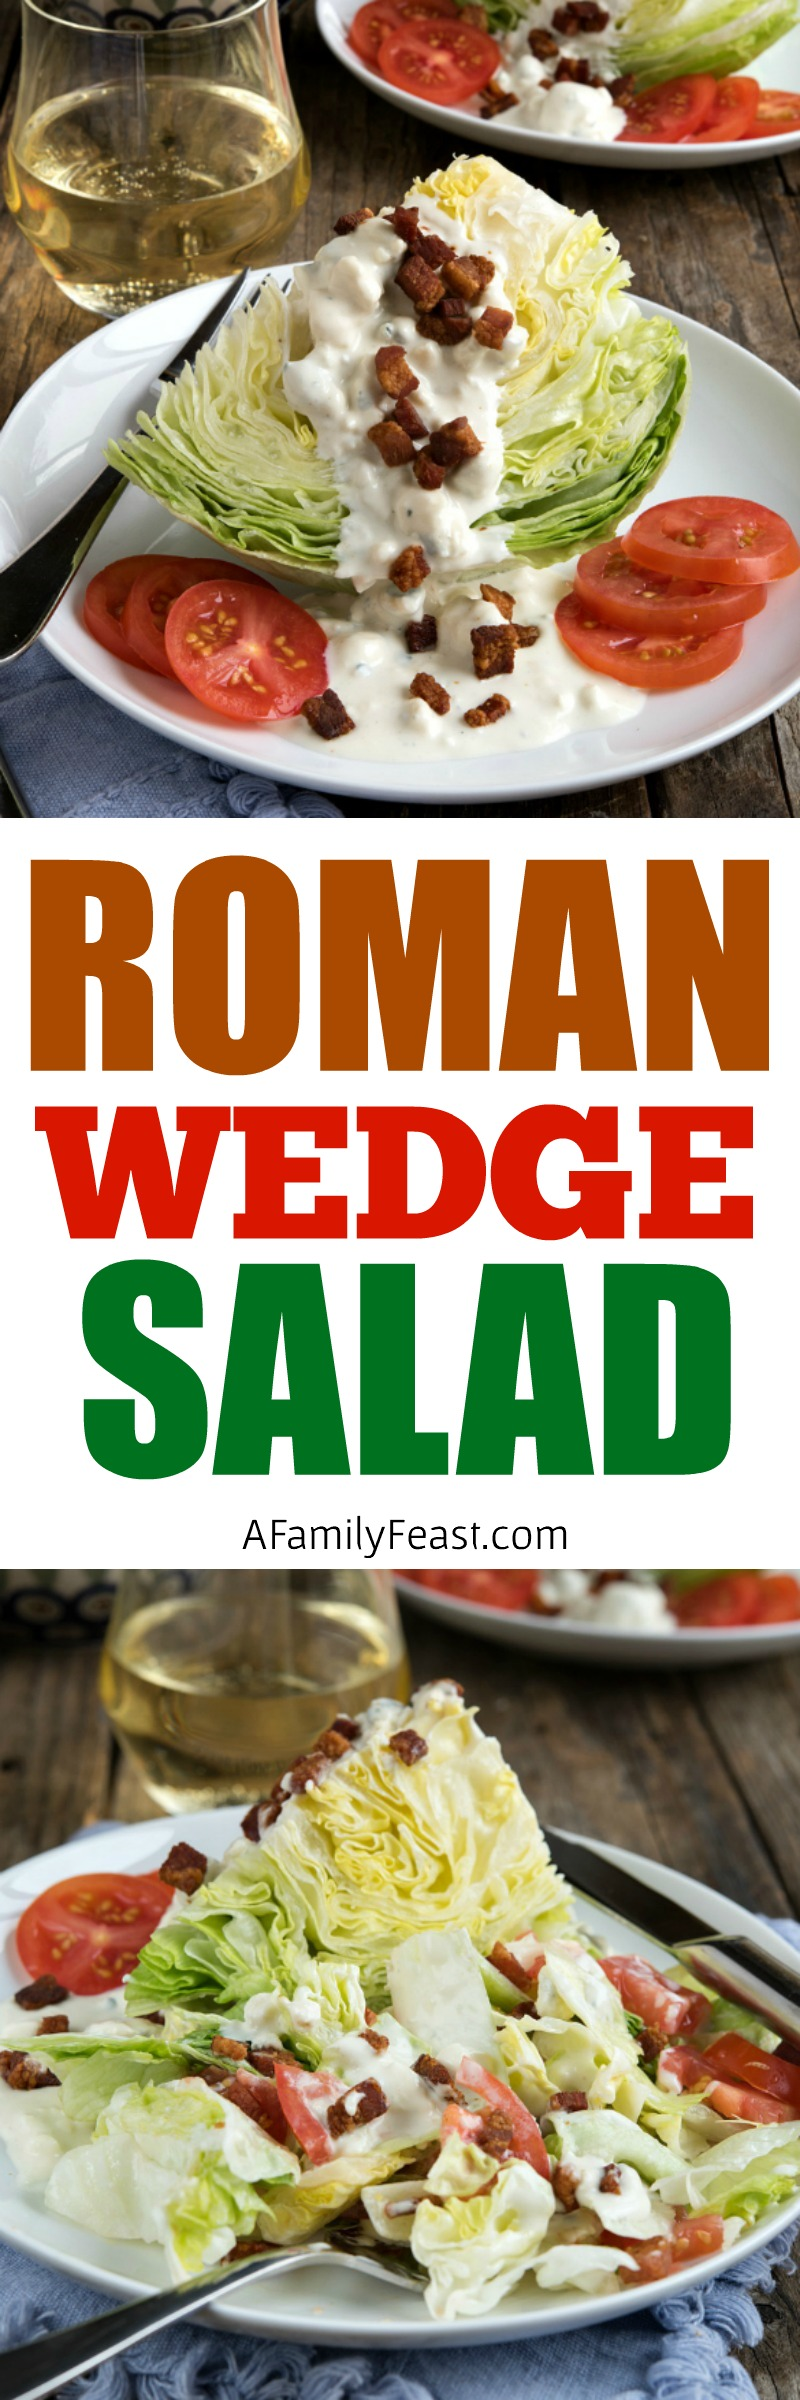 The perfect Roman Wedge Salad: crisp iceberg lettuce, homemade blue cheese dressing, tomatoes, and pancetta. This is the best way to serve a classic iceberg wedge salad.